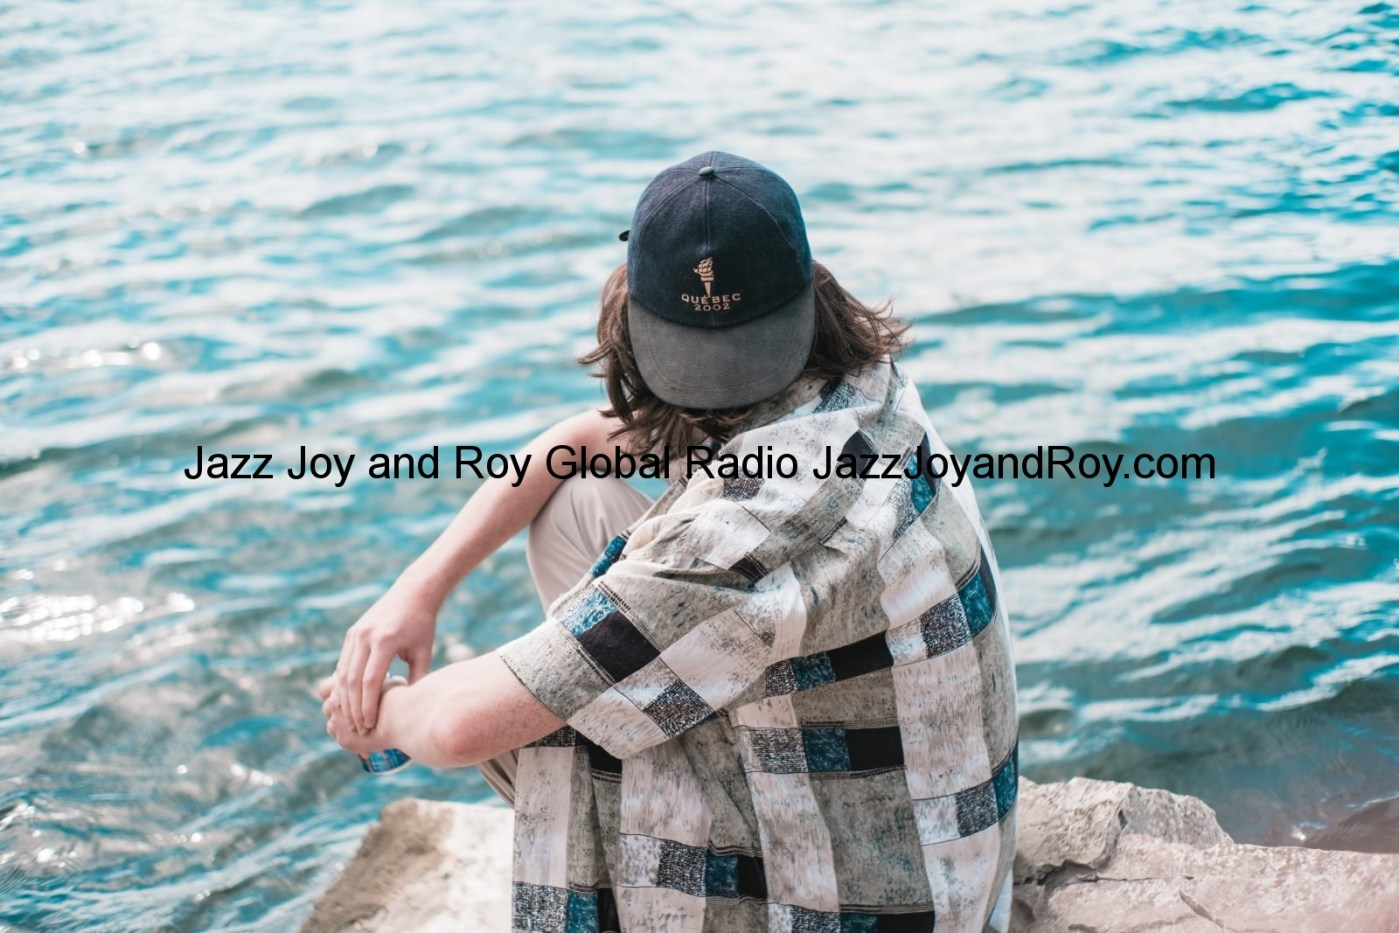 man in black cap and plaid shirt sitting on rock near body of water during daytime